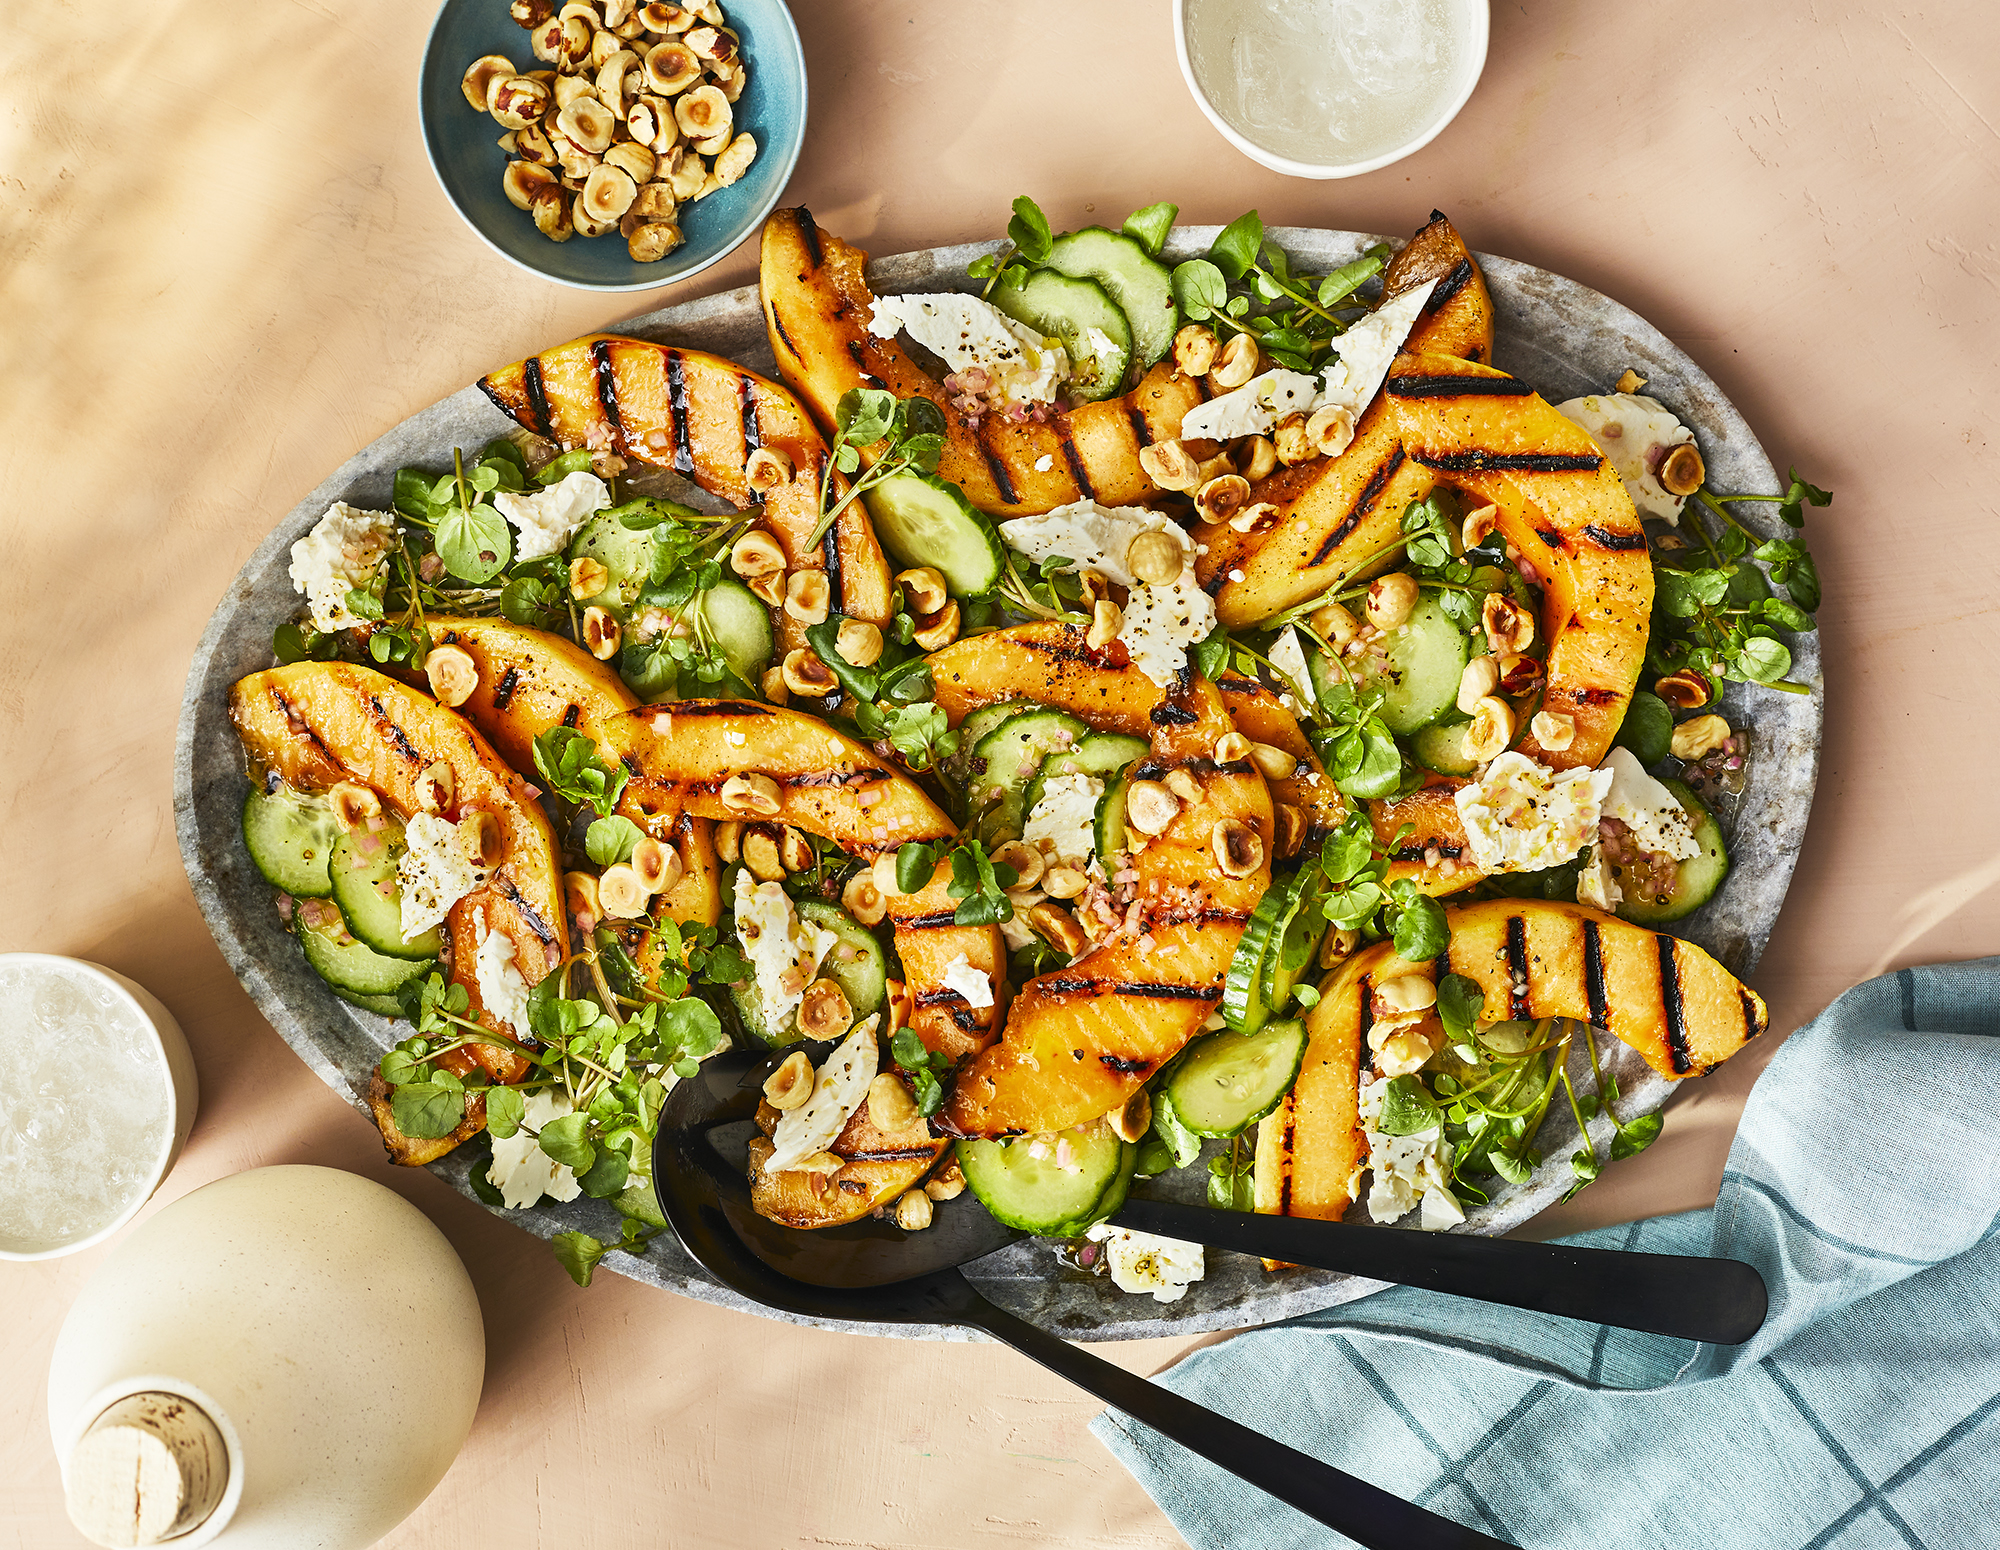 cantaloupe-grilled-recipes-health-mag-june-2020